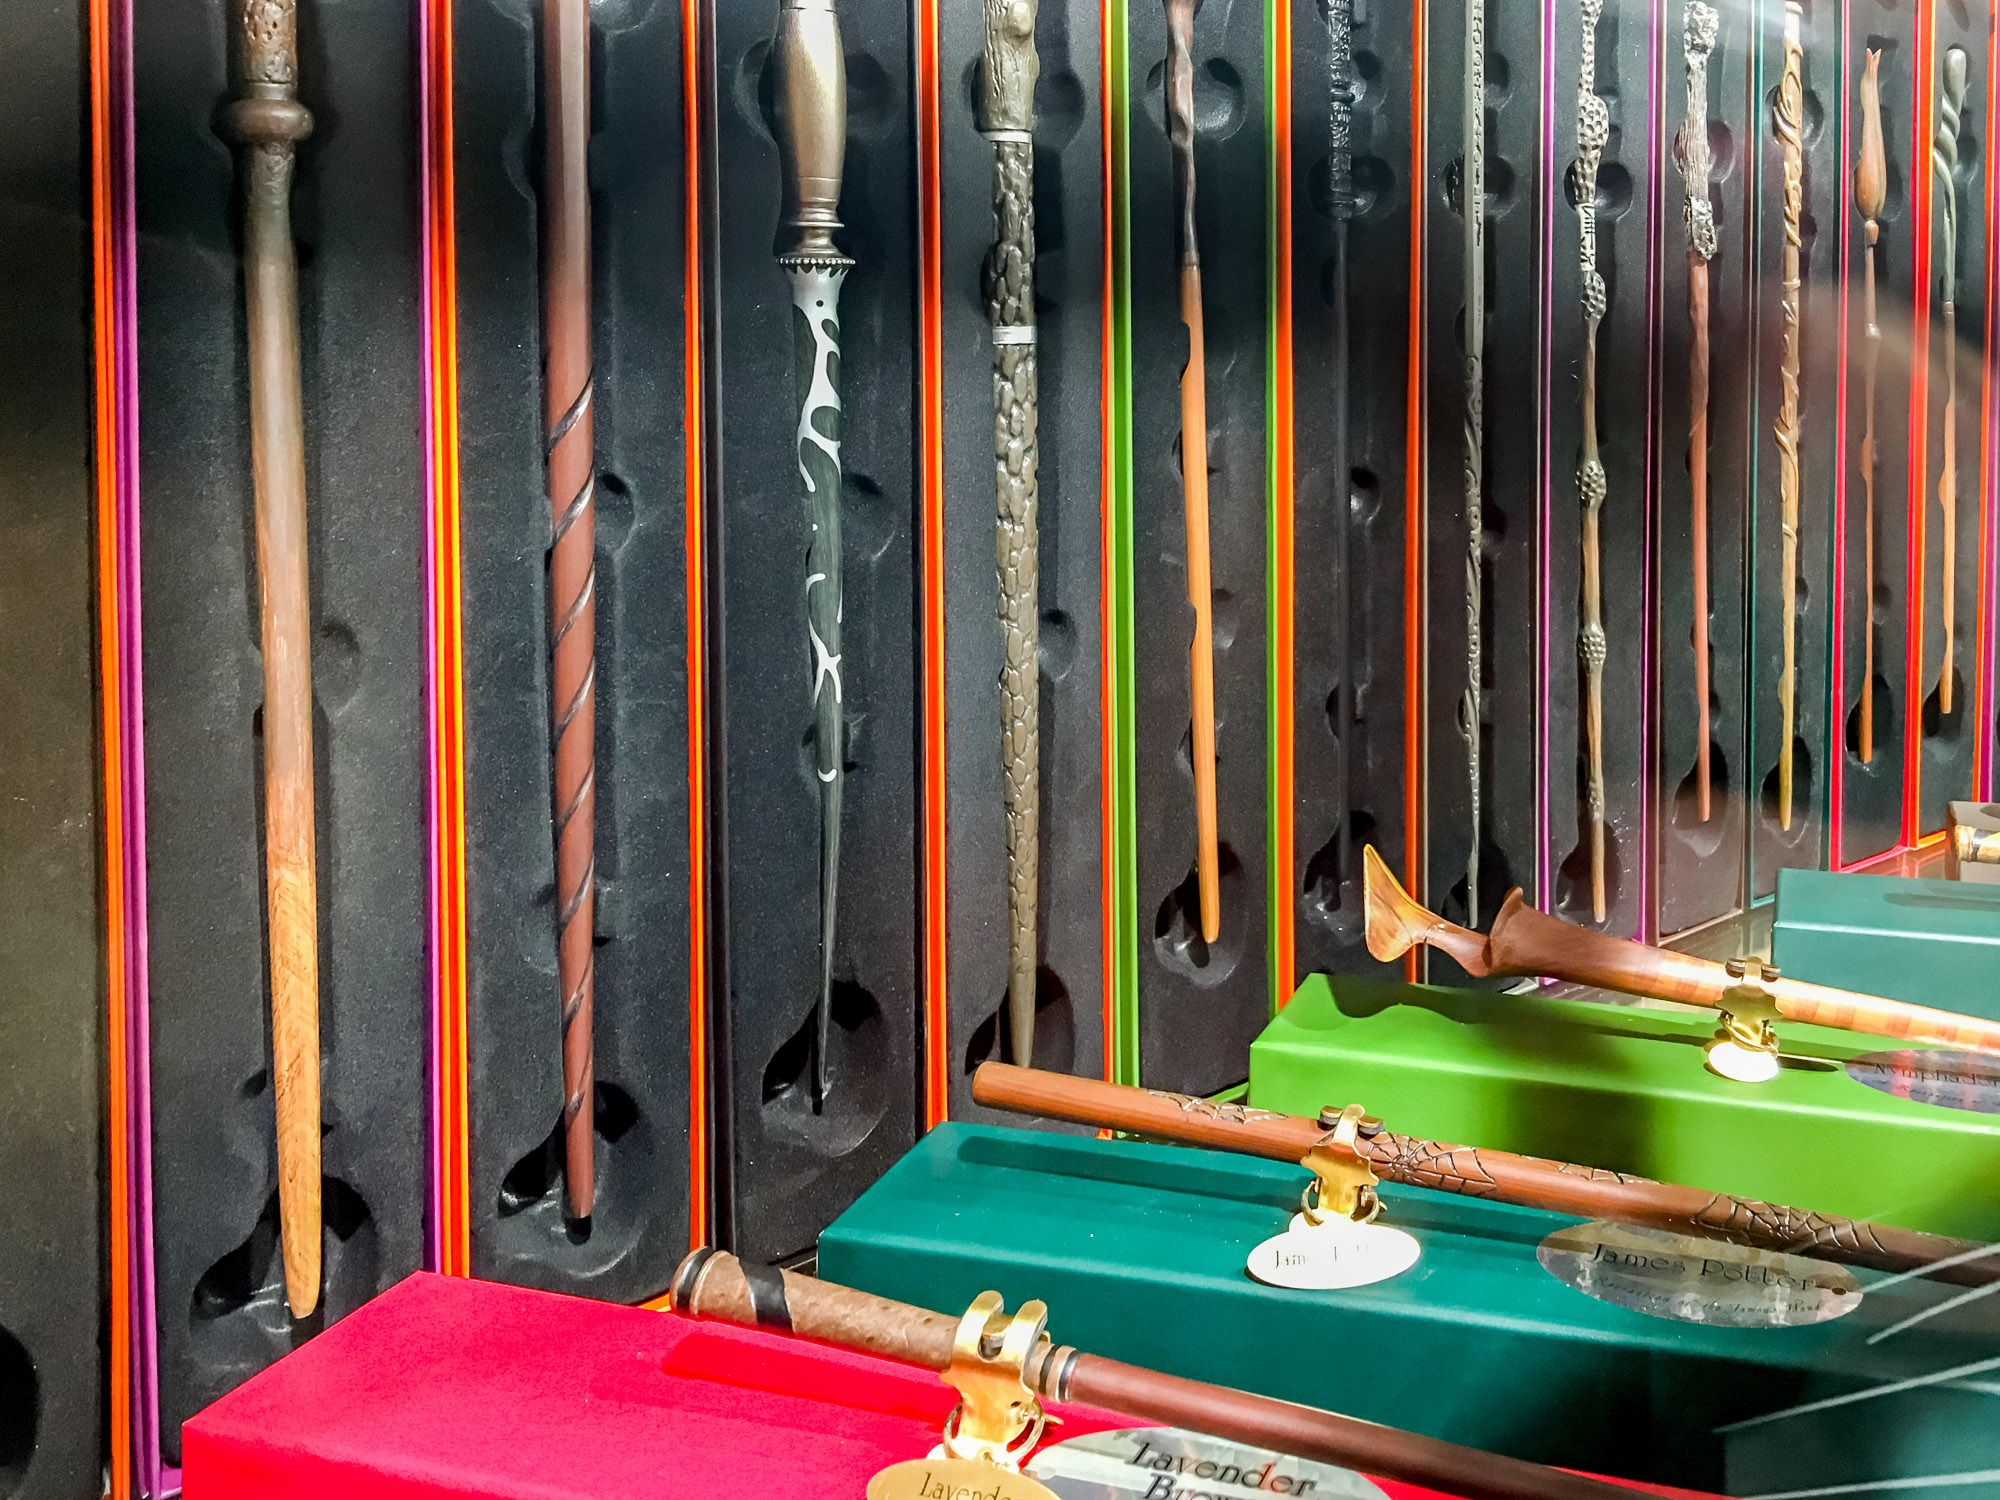 Harry Potter wands are sold at Hamley's toy store on Regent Street in London.